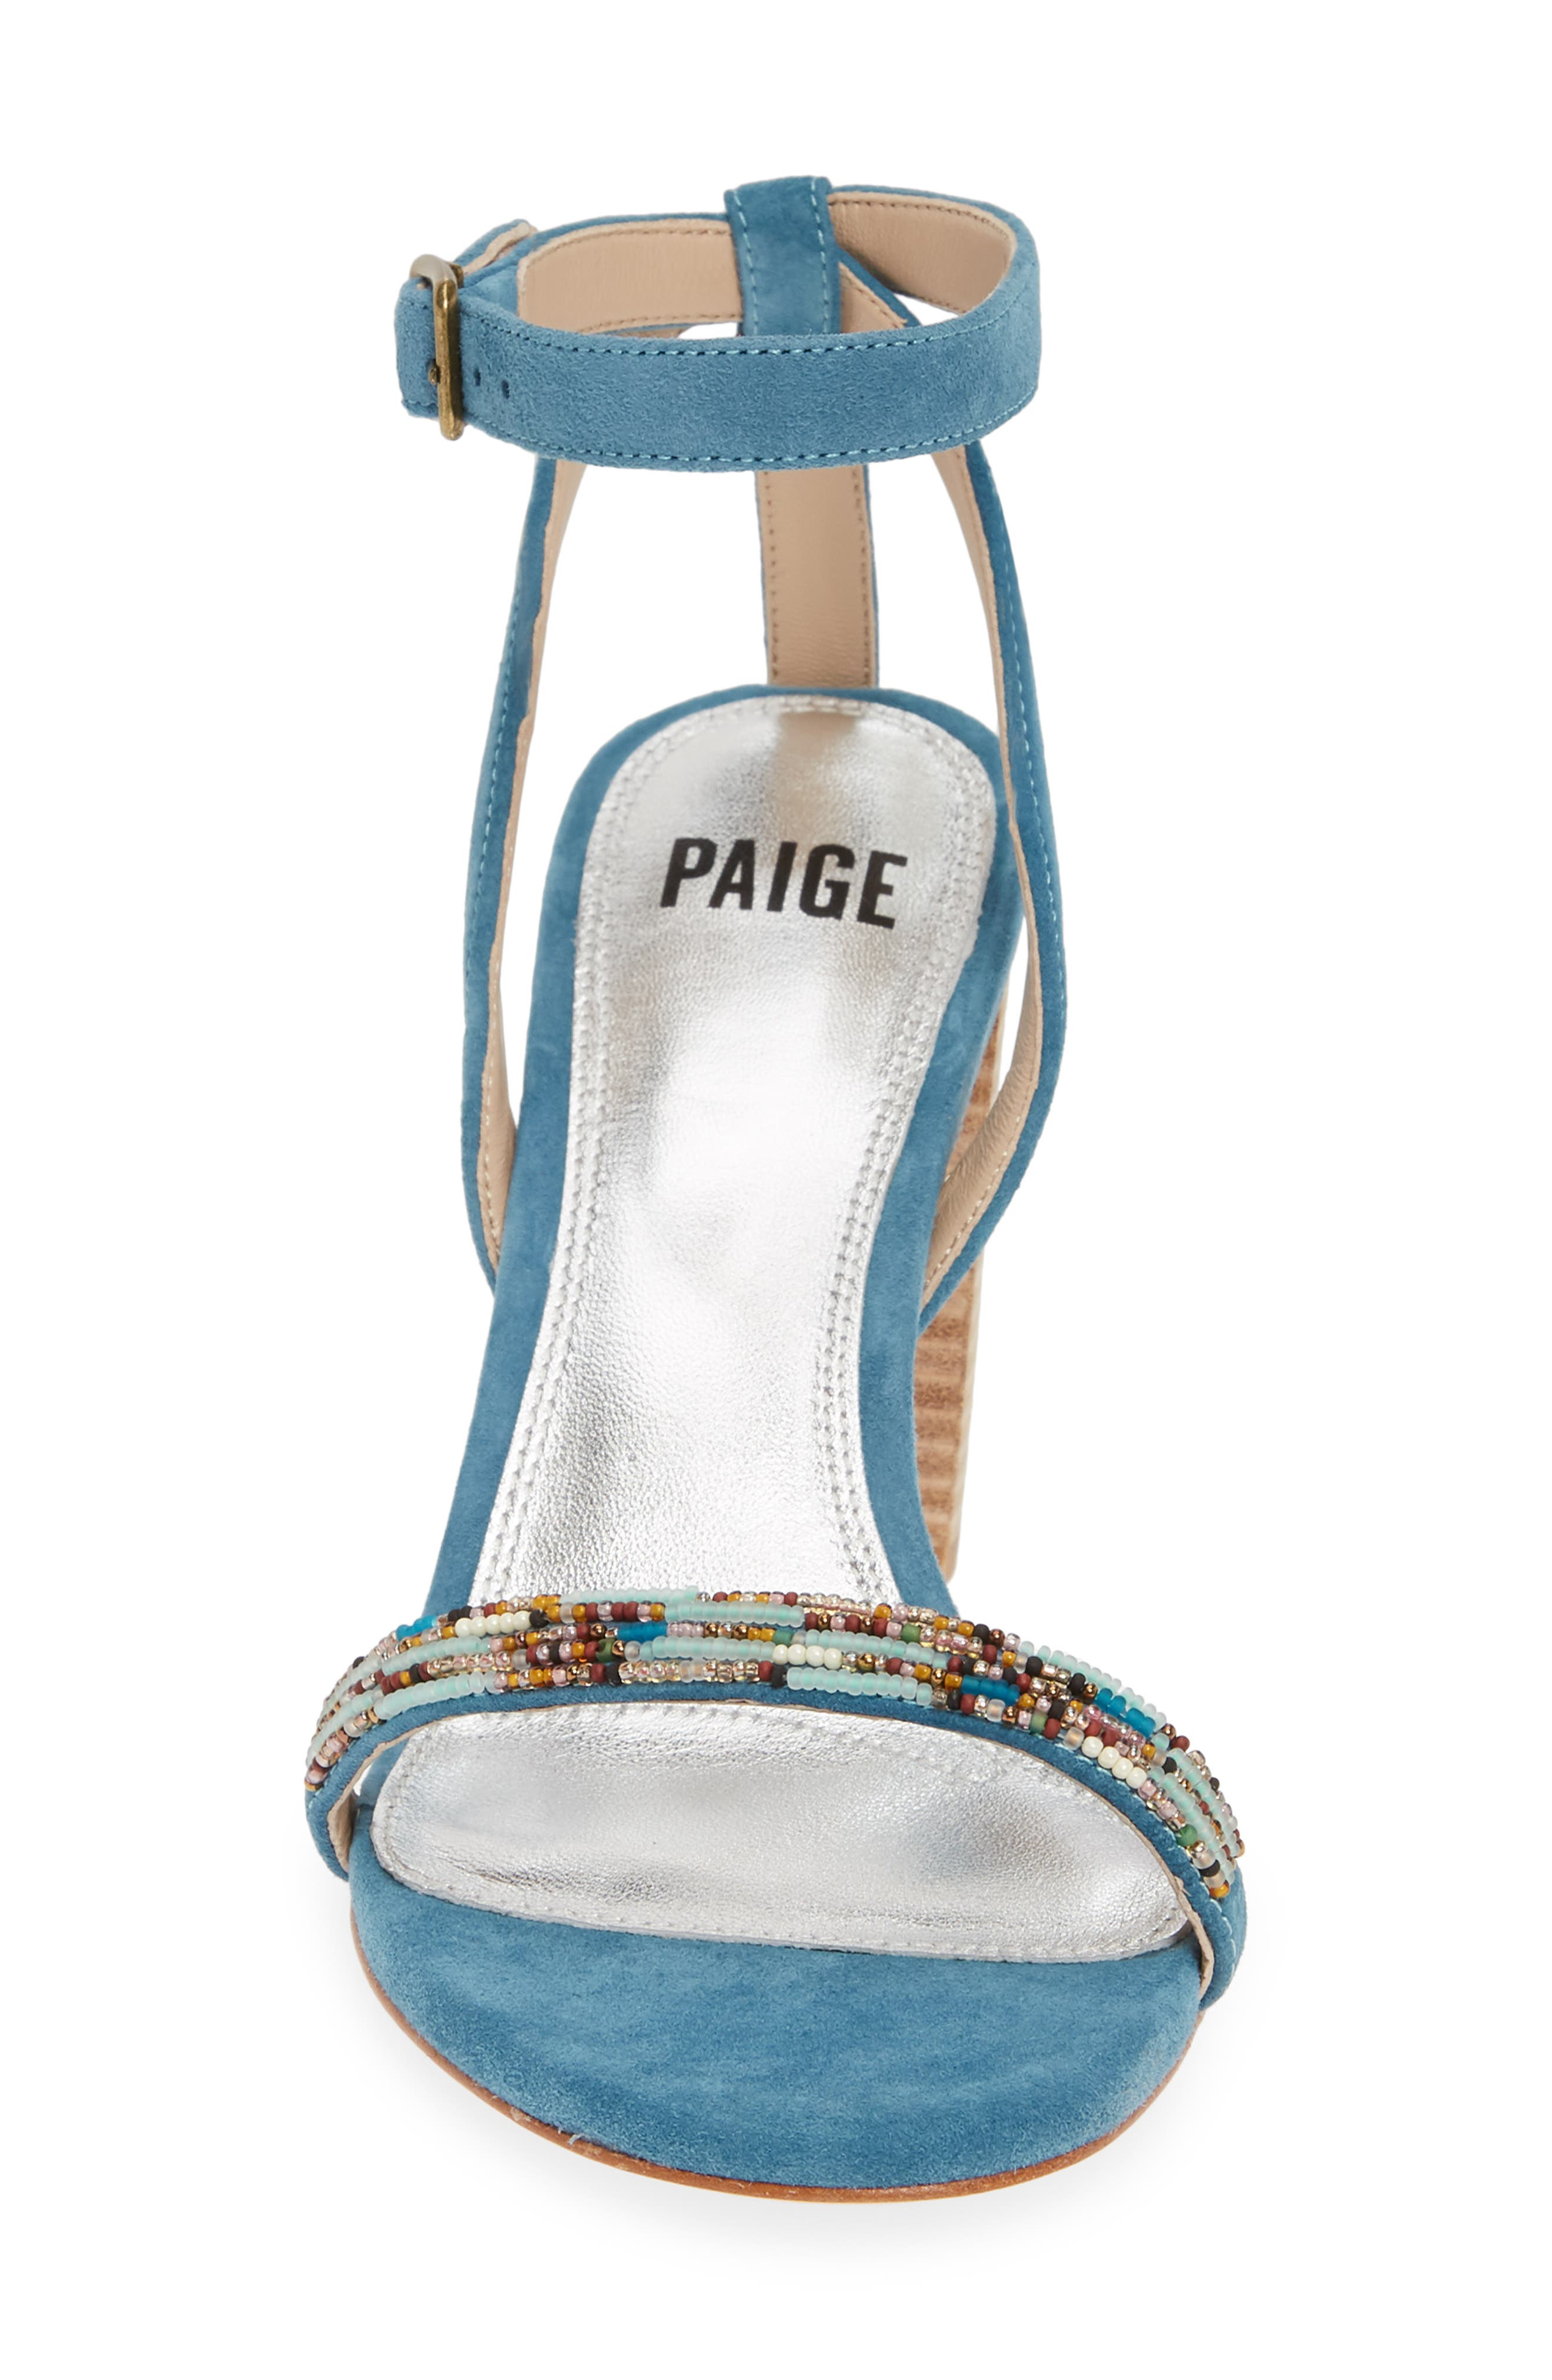 PAIGE, Gabriella Beaded Sandal, Alternate thumbnail 4, color, BLUE